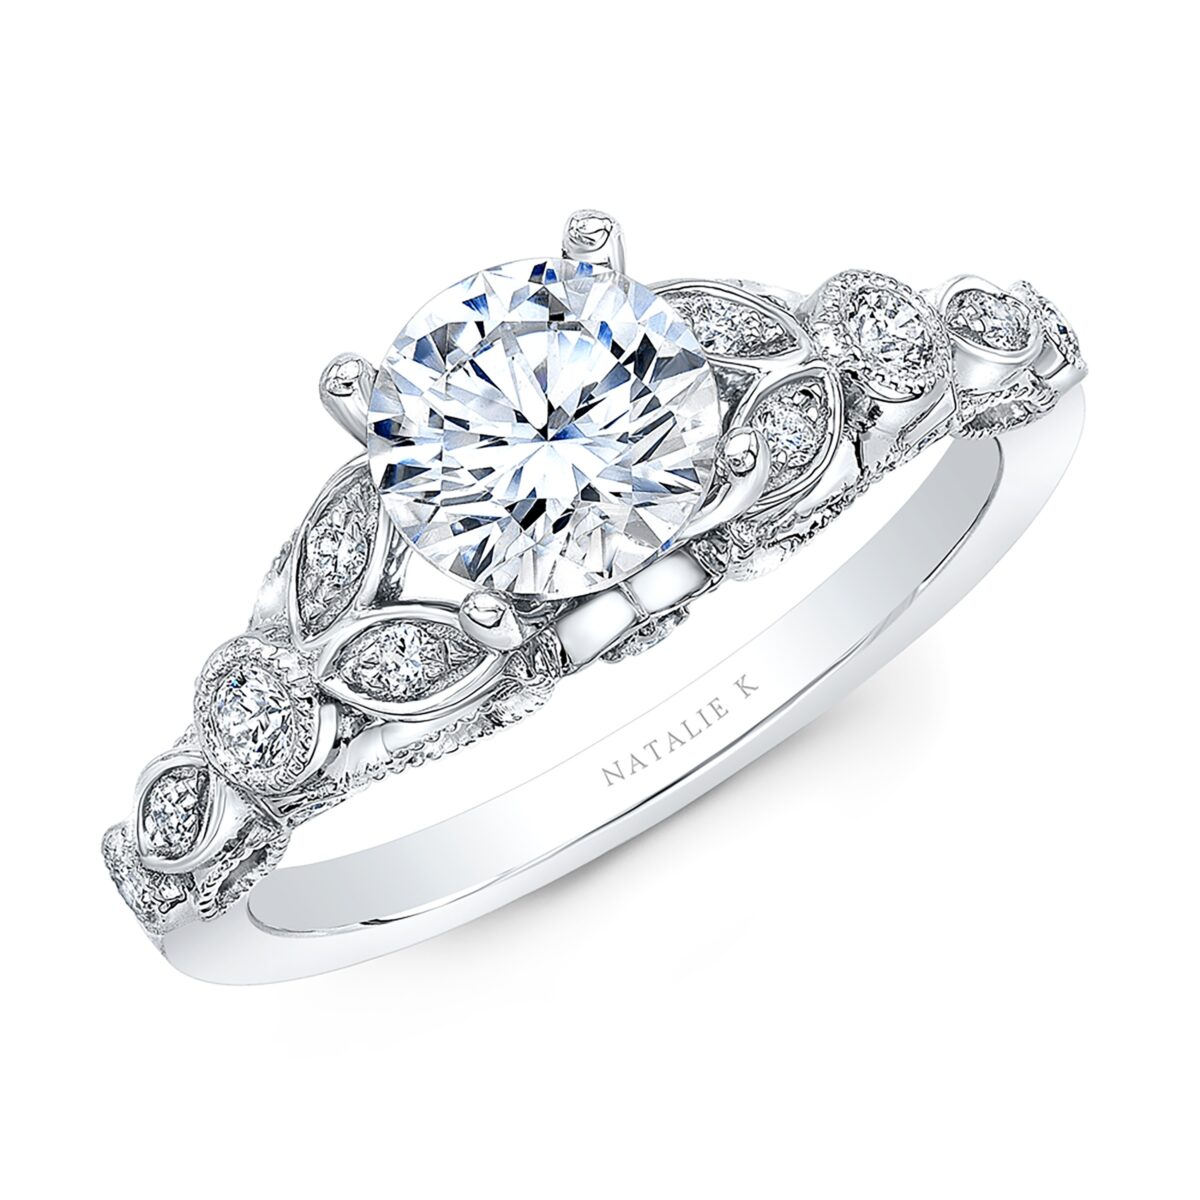 collections design ring fullxfull all rings unique delicate moissanite jewelry il products gold carat set engagement white bridal leaf camellia